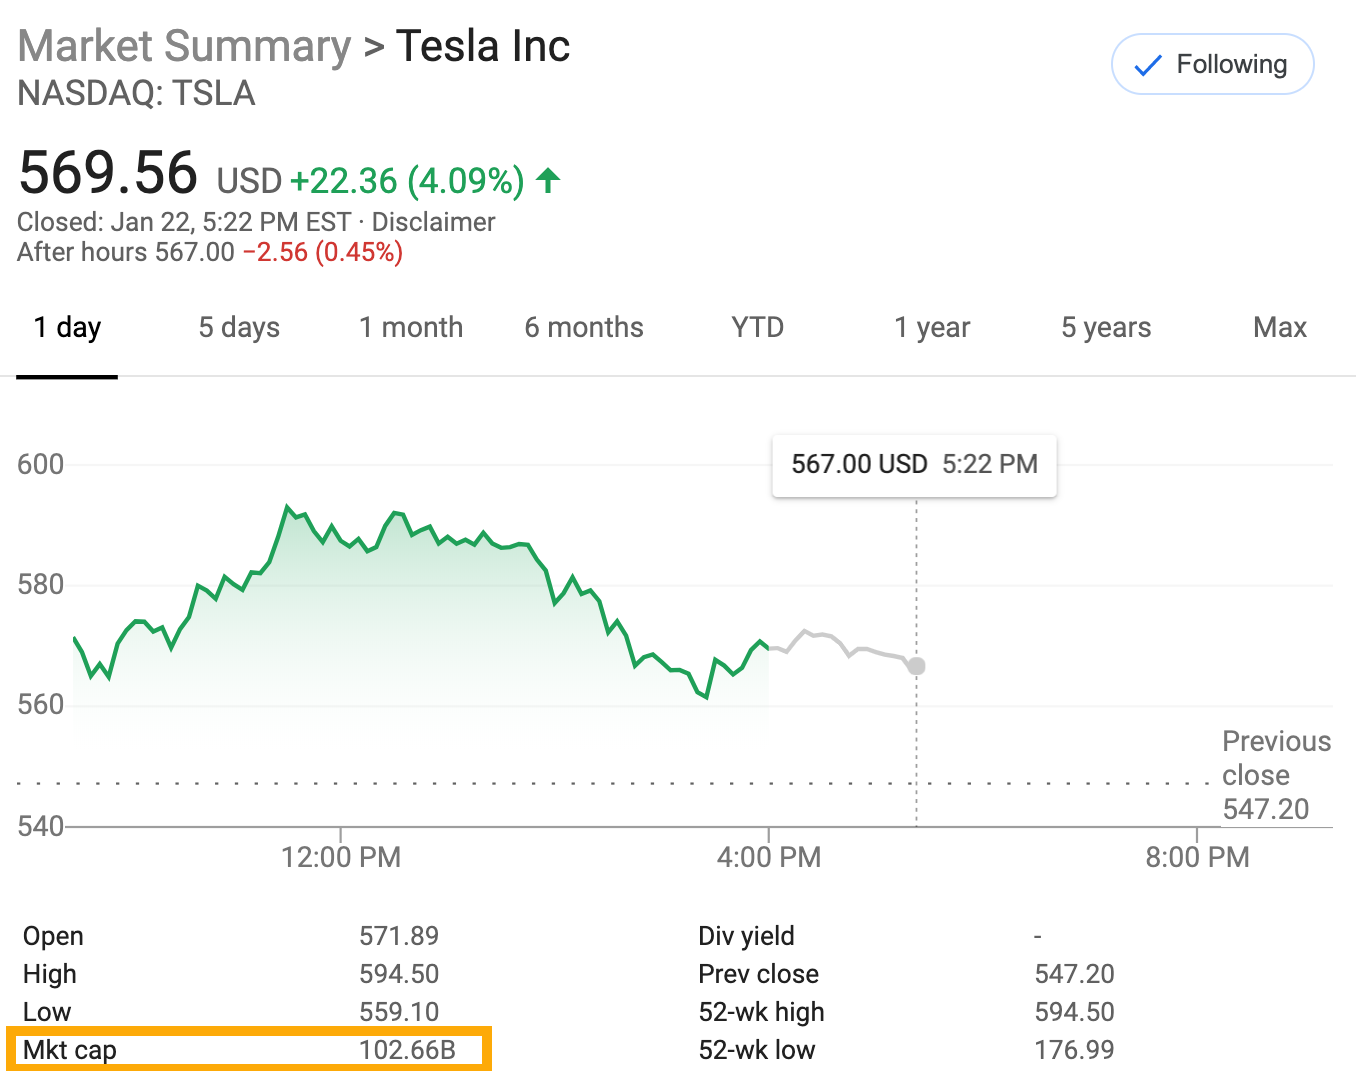 Tesla Storms Past $100 Billion In Value, Overtaking Volkswagen To Become World's 2nd Largest Auto Company